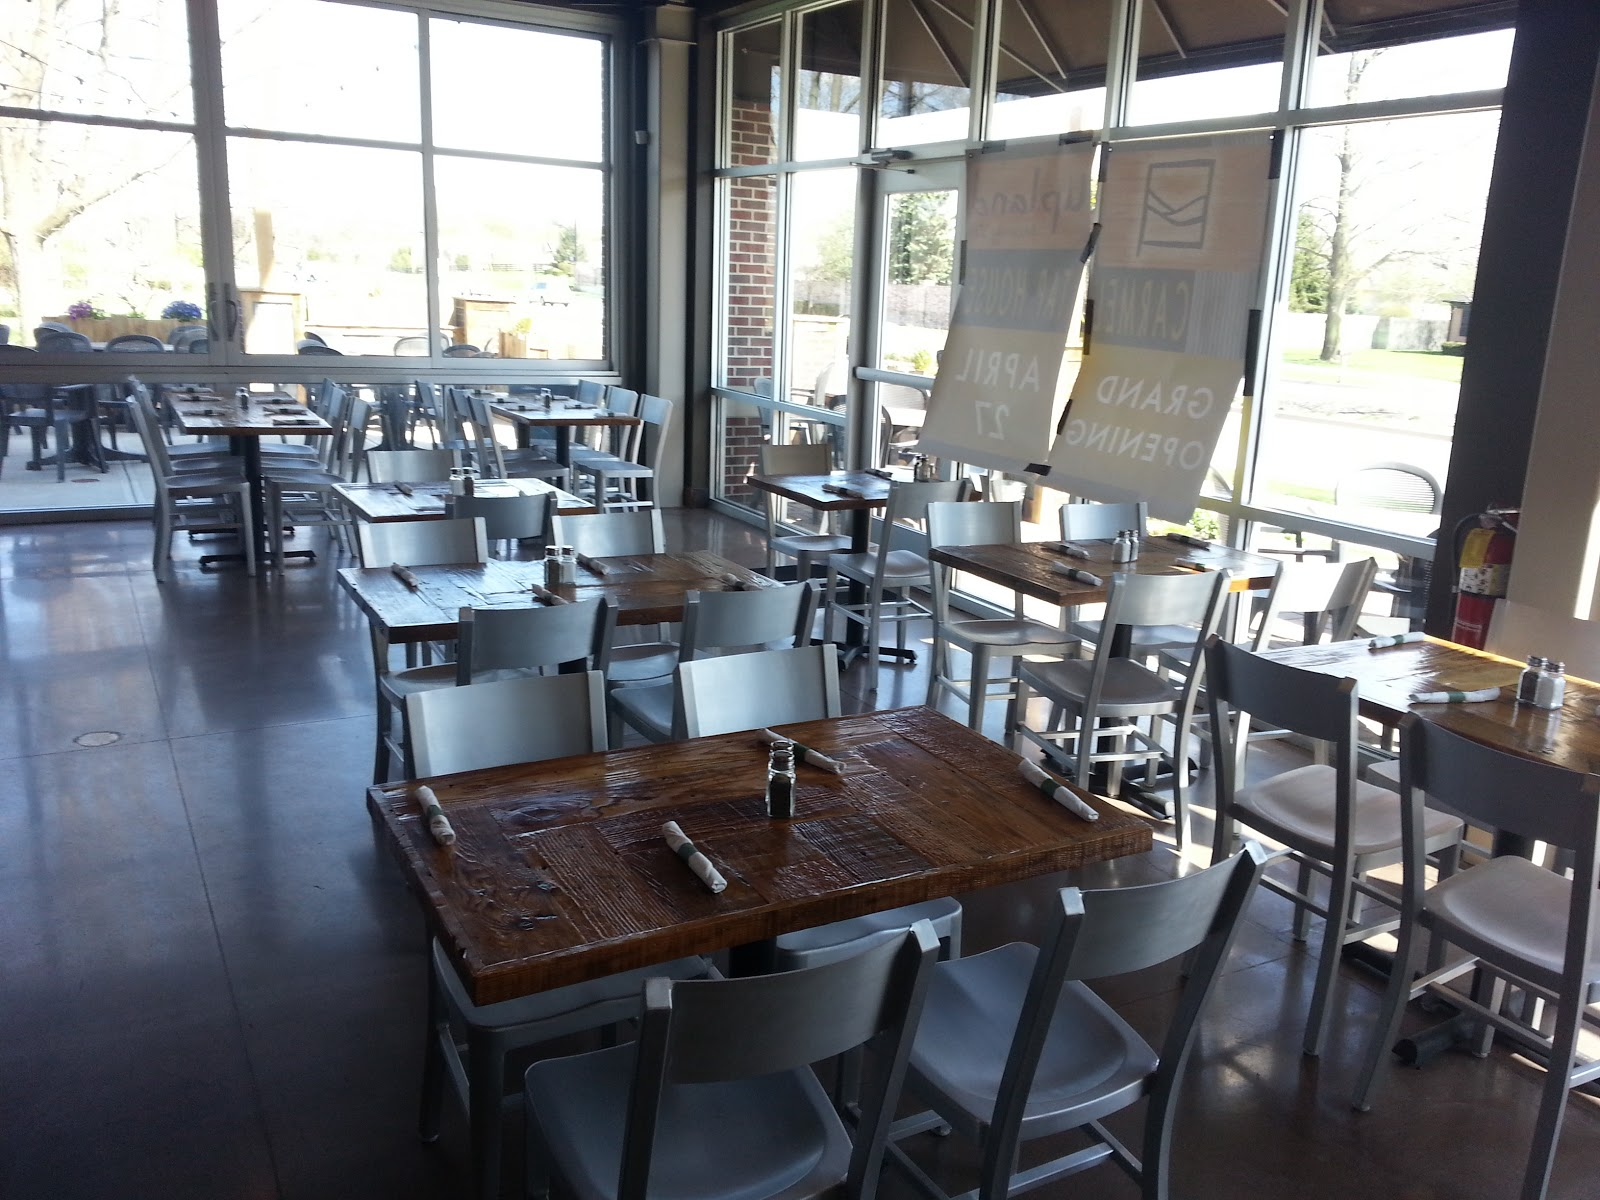 indianabeer: indiana beer news: upland opens carmel tap/restaurant